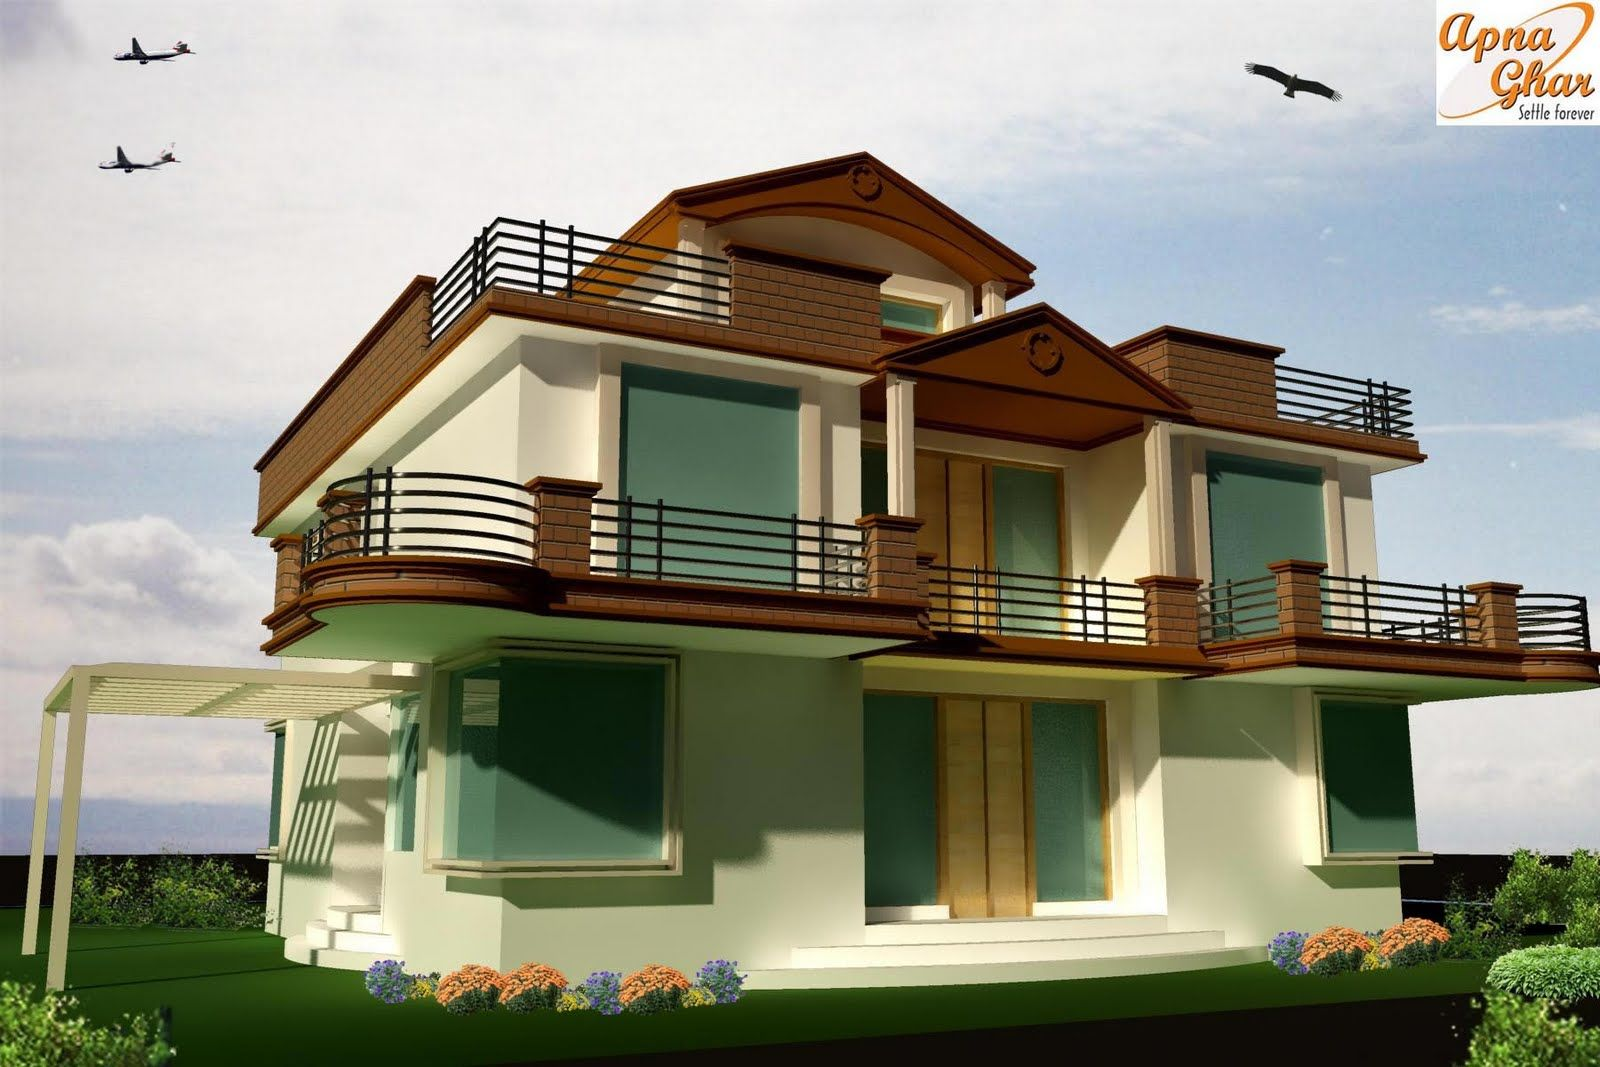 Architectural designs modern architectural house plans for Architectural design house plans